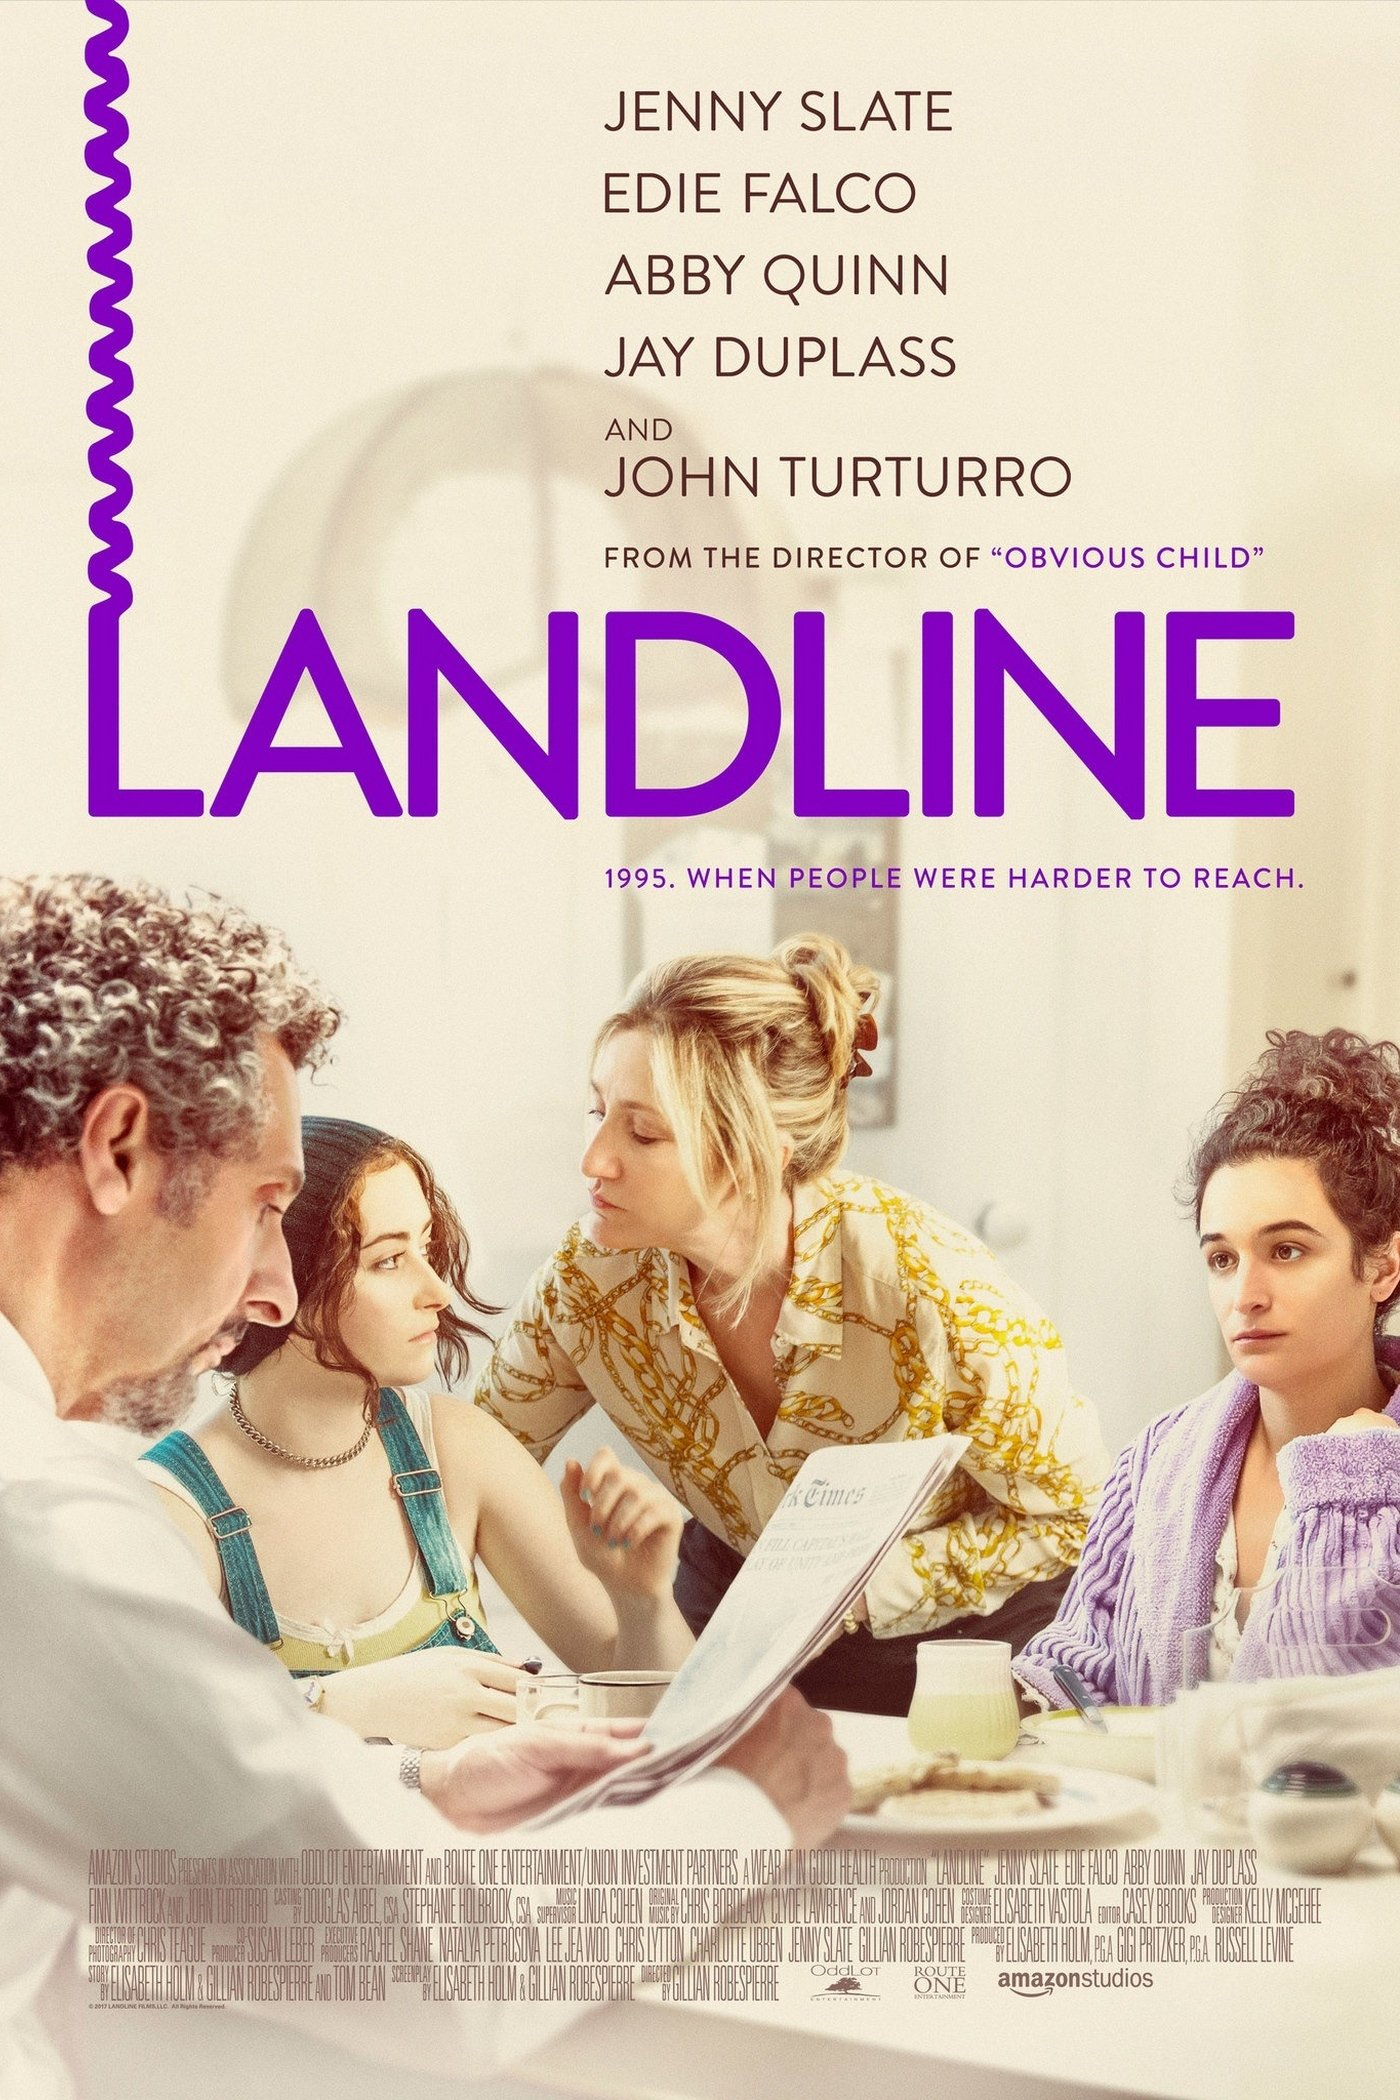 Poster for Landline (Q&A with 'writer/director' Gillian Robespierre and 'writer/producer' Elisabeth Holm.)